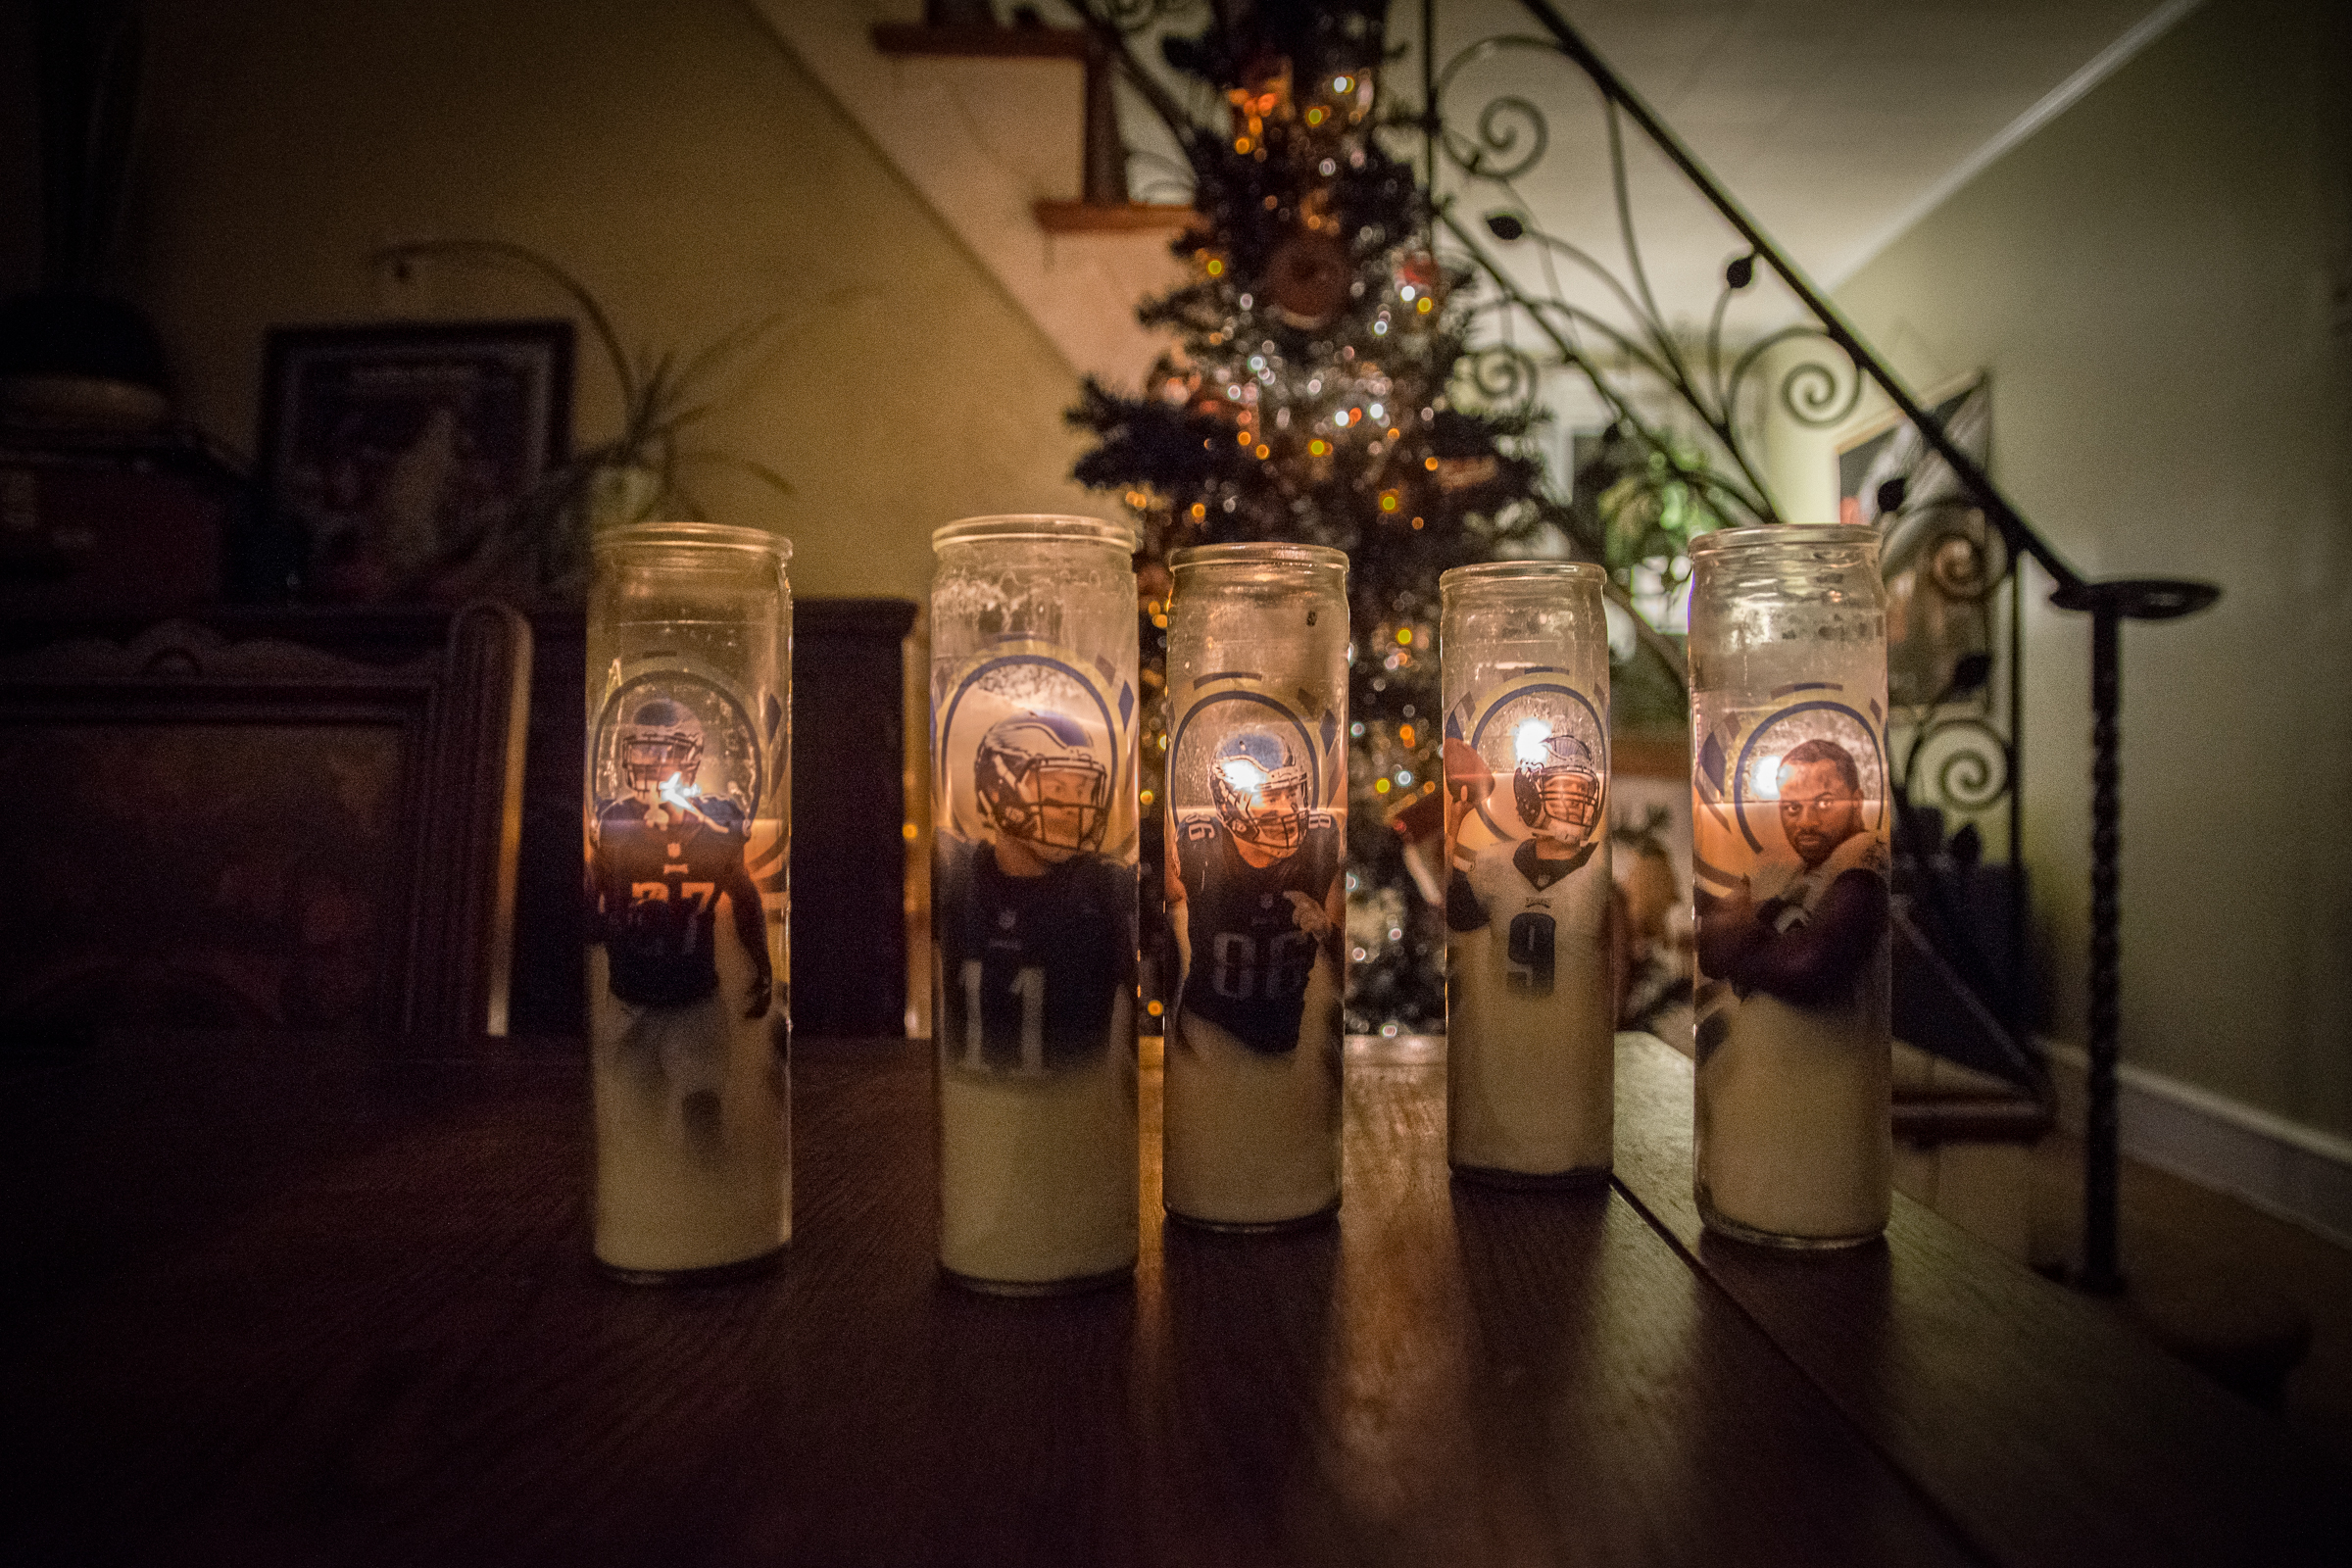 Stephanie Ricci at her home in Philadelphia on Friday, November 30, 2018 with her Eagles prayer candles. Ricci designs the candles and lights them for good luck during Eagles games.